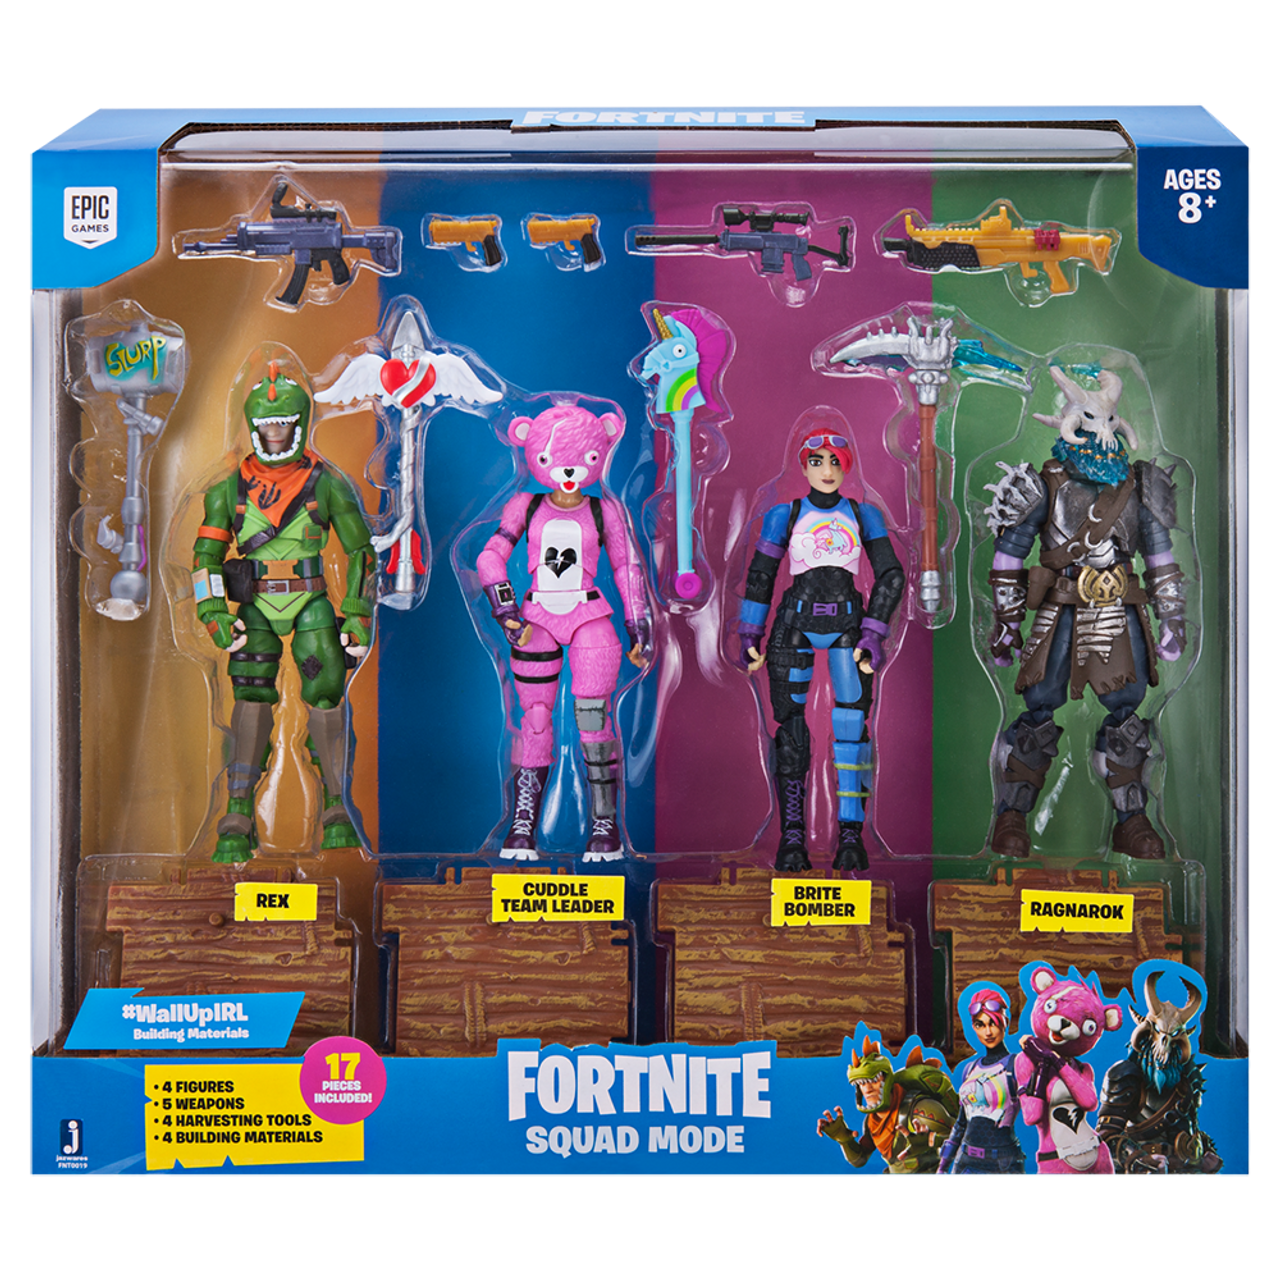 FORTNITE SOLO MODE CORE ACTION FIGURE DRIFT NEW EPIC GAMES Loot Llama